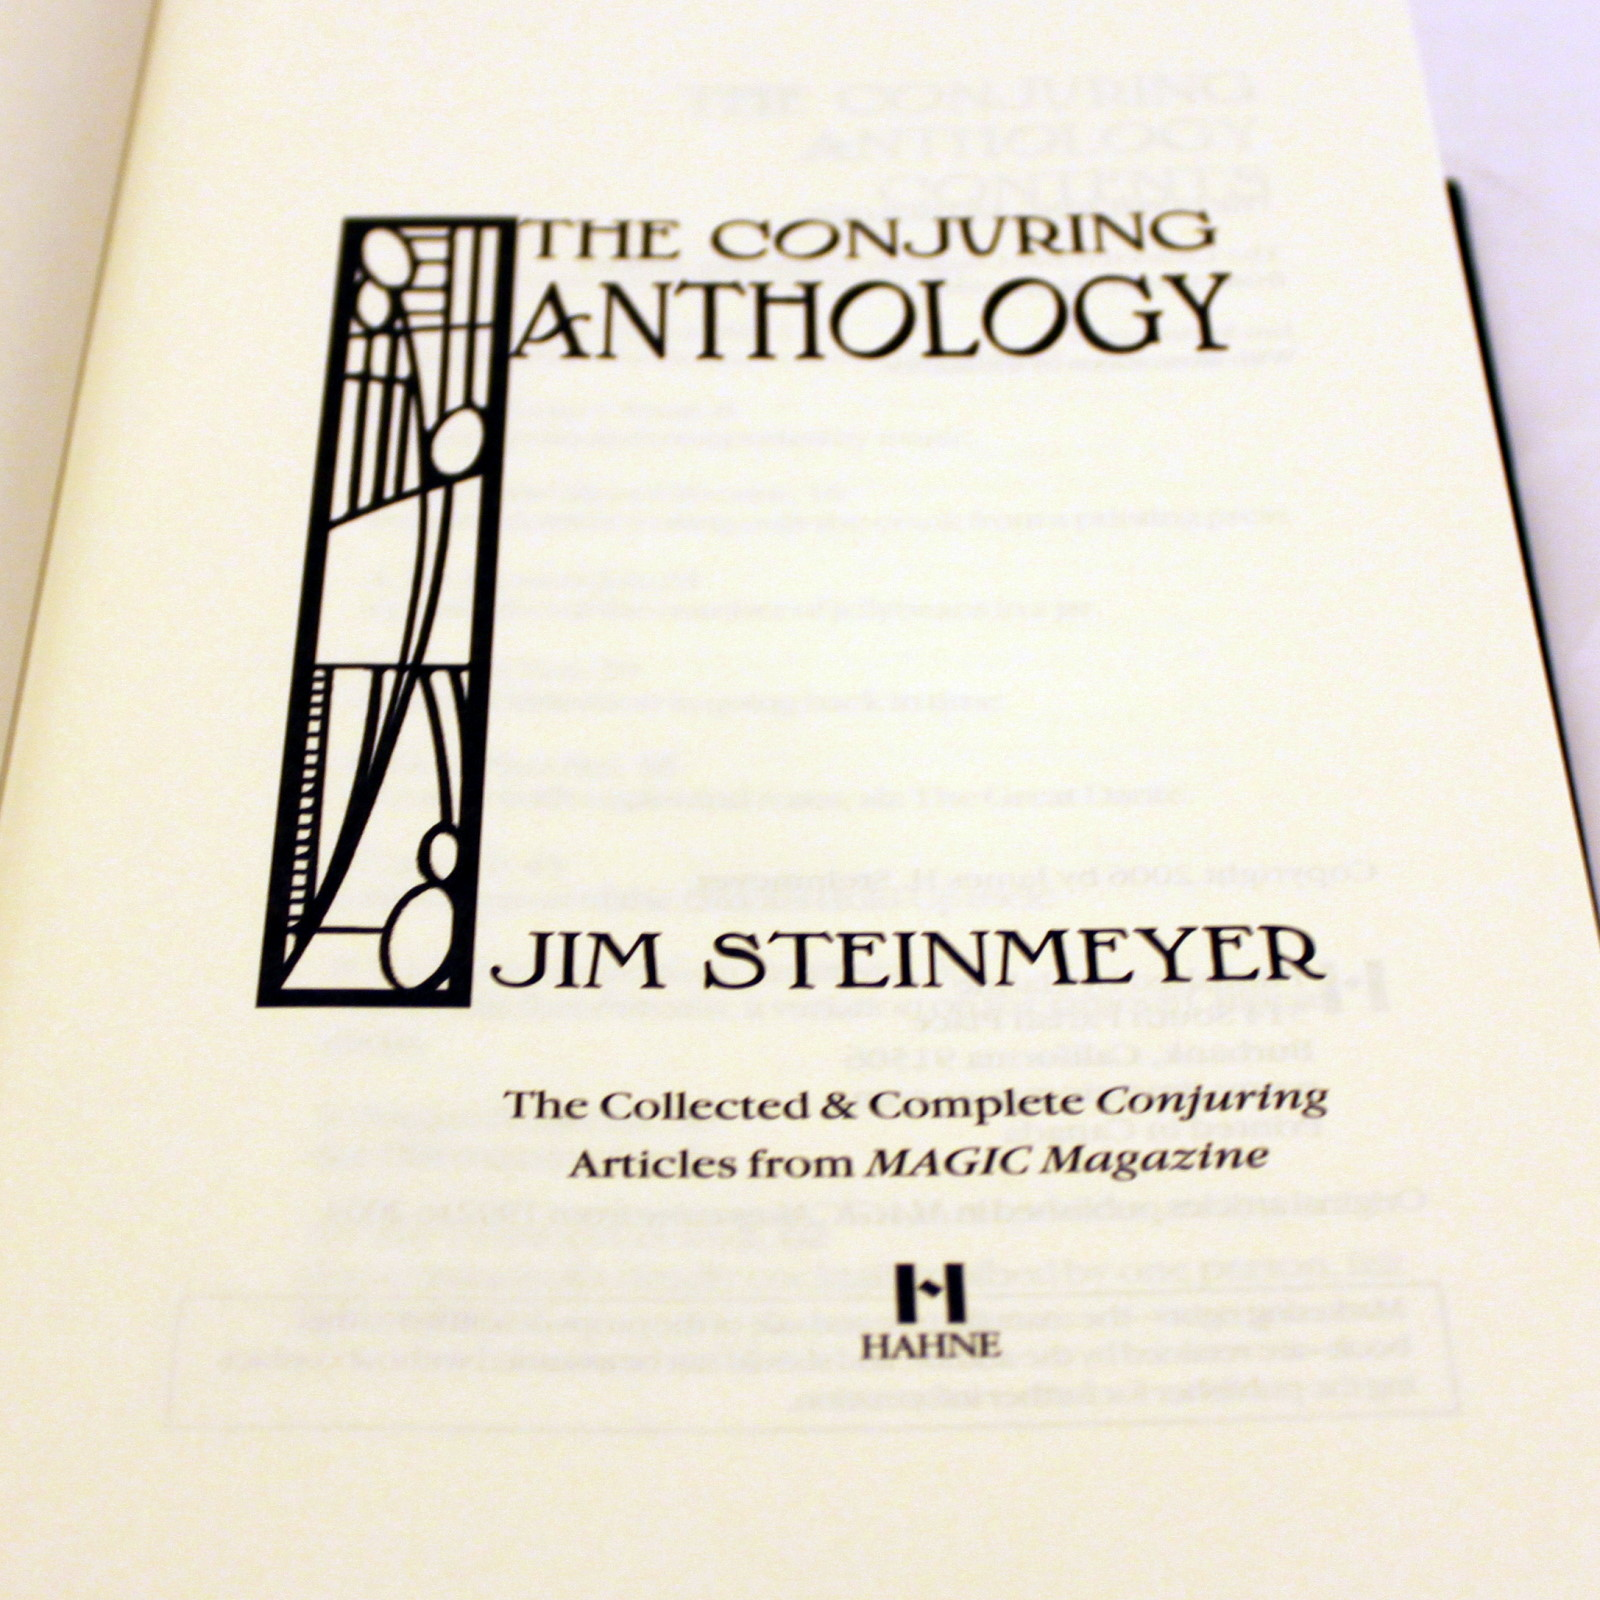 Conjuring Anthology, The by Jim Steinmeyer